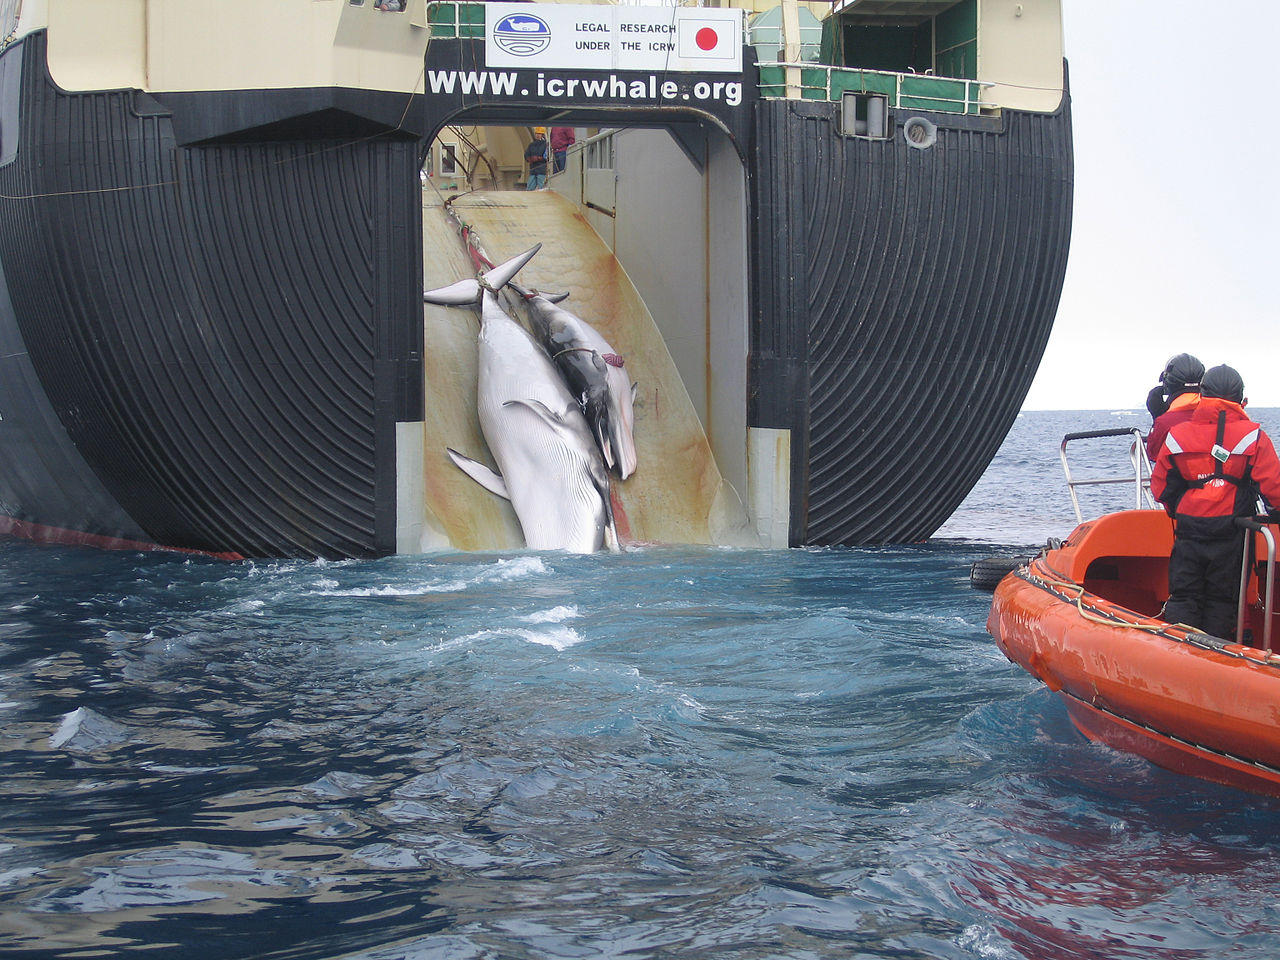 Greenpeace condemns Japan's announcement to resume commercial whaling